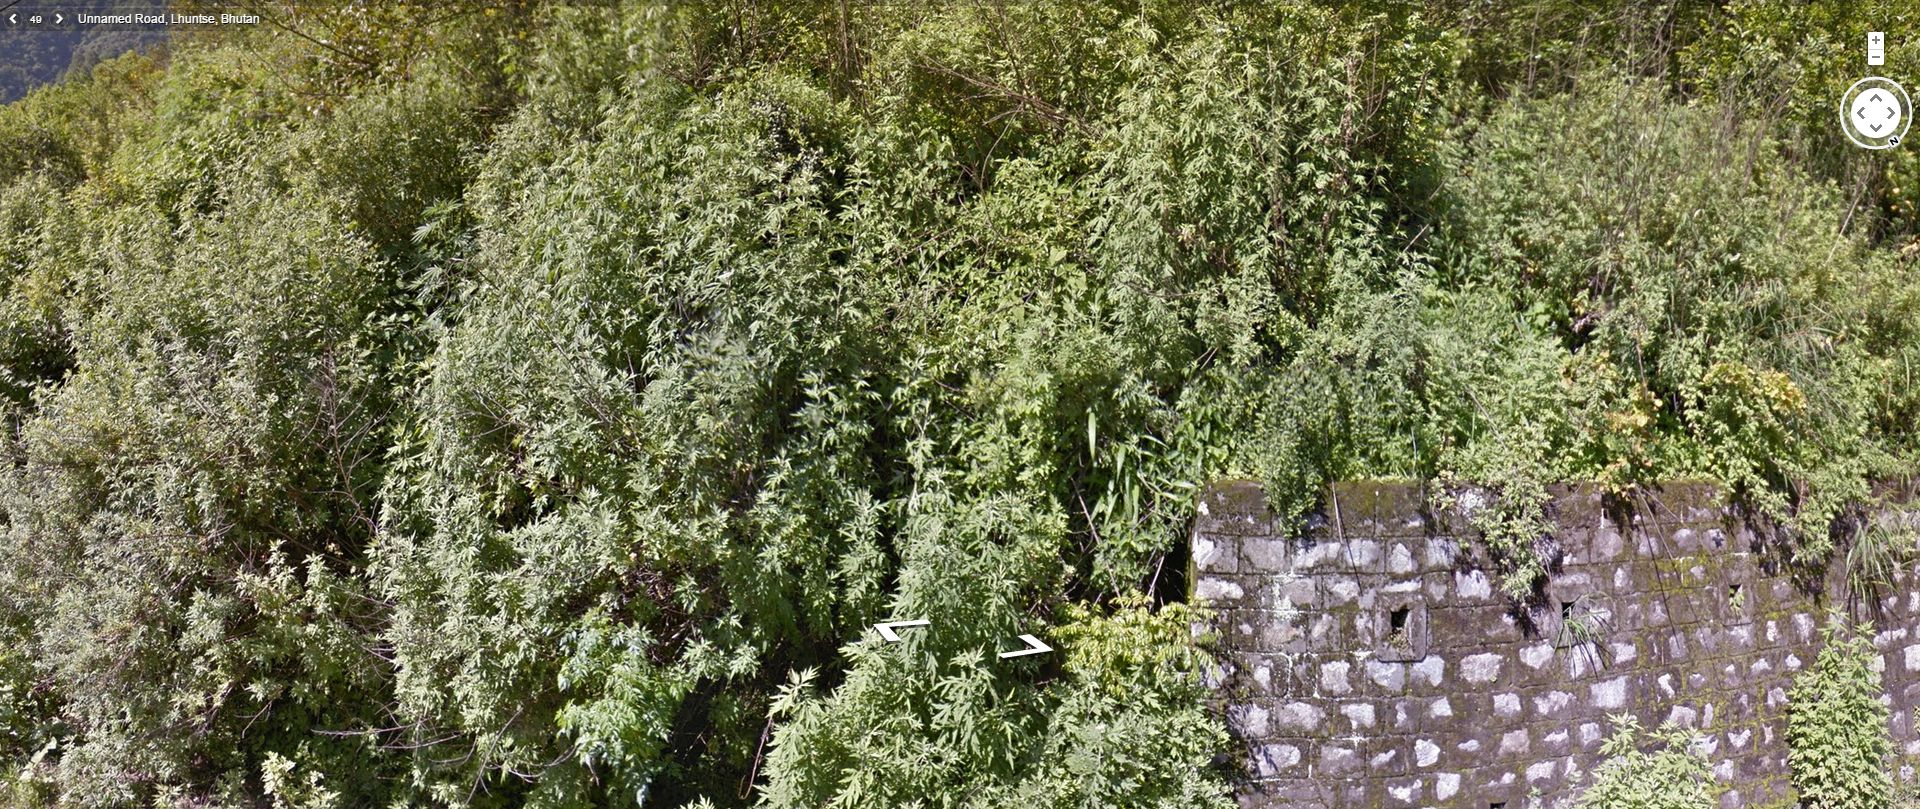 In Bhutan, marijuana grows in the wild and is more common than regular grass!